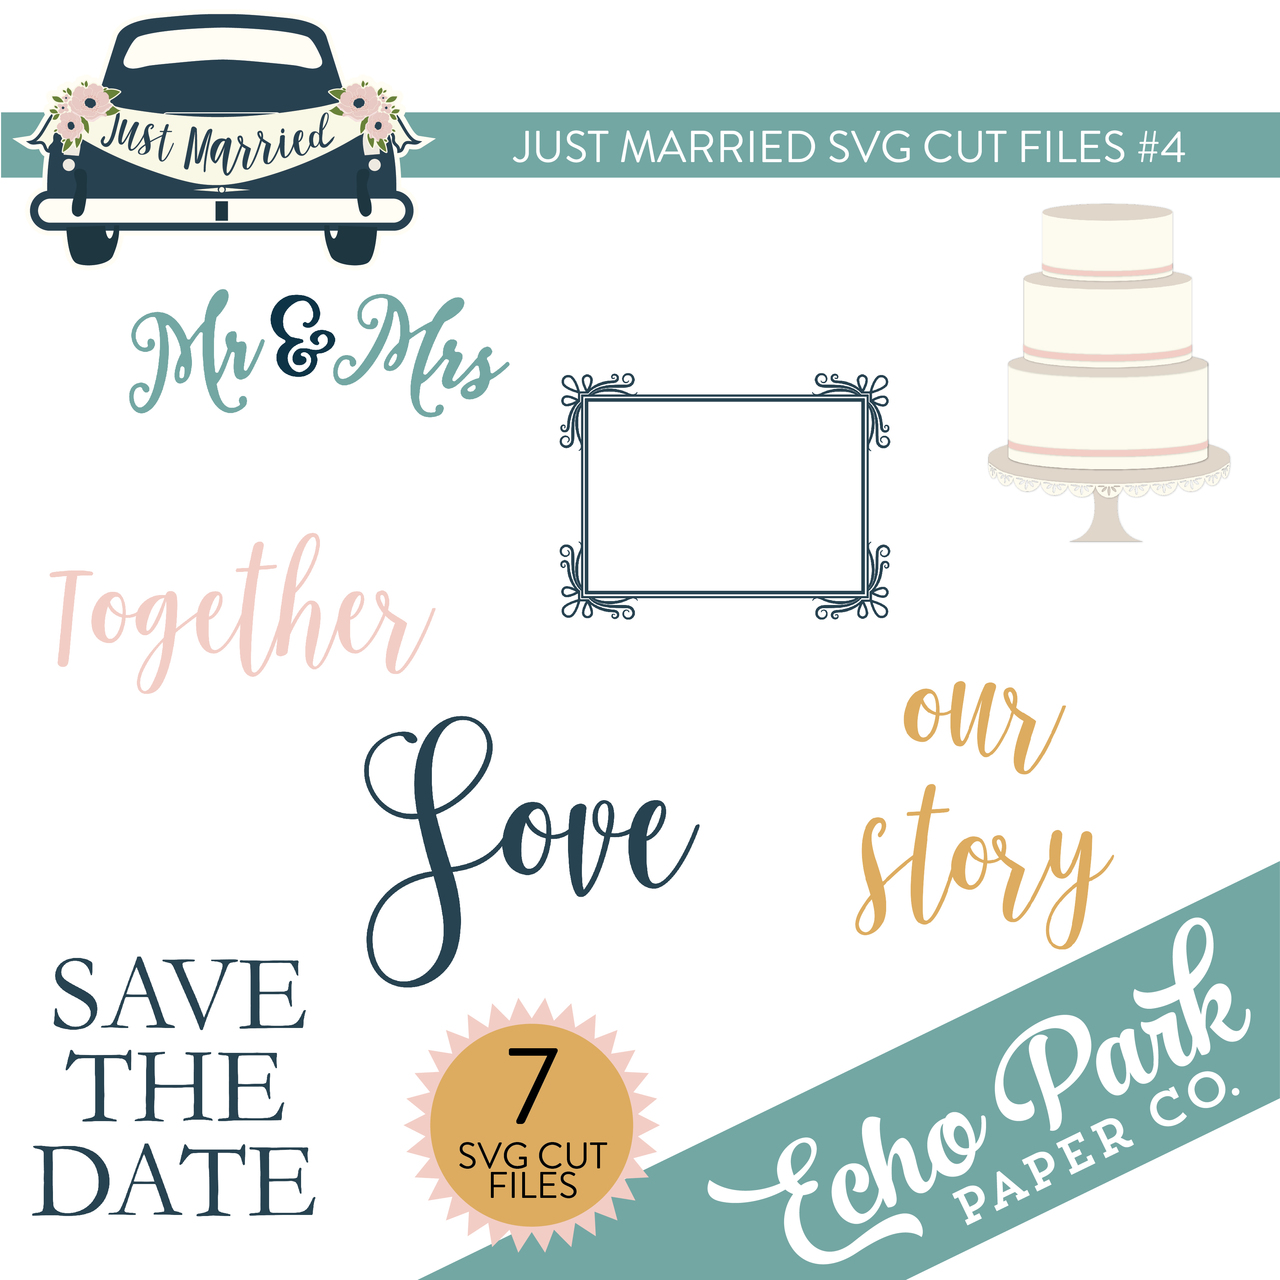 Just Married SVG Cut Files #4